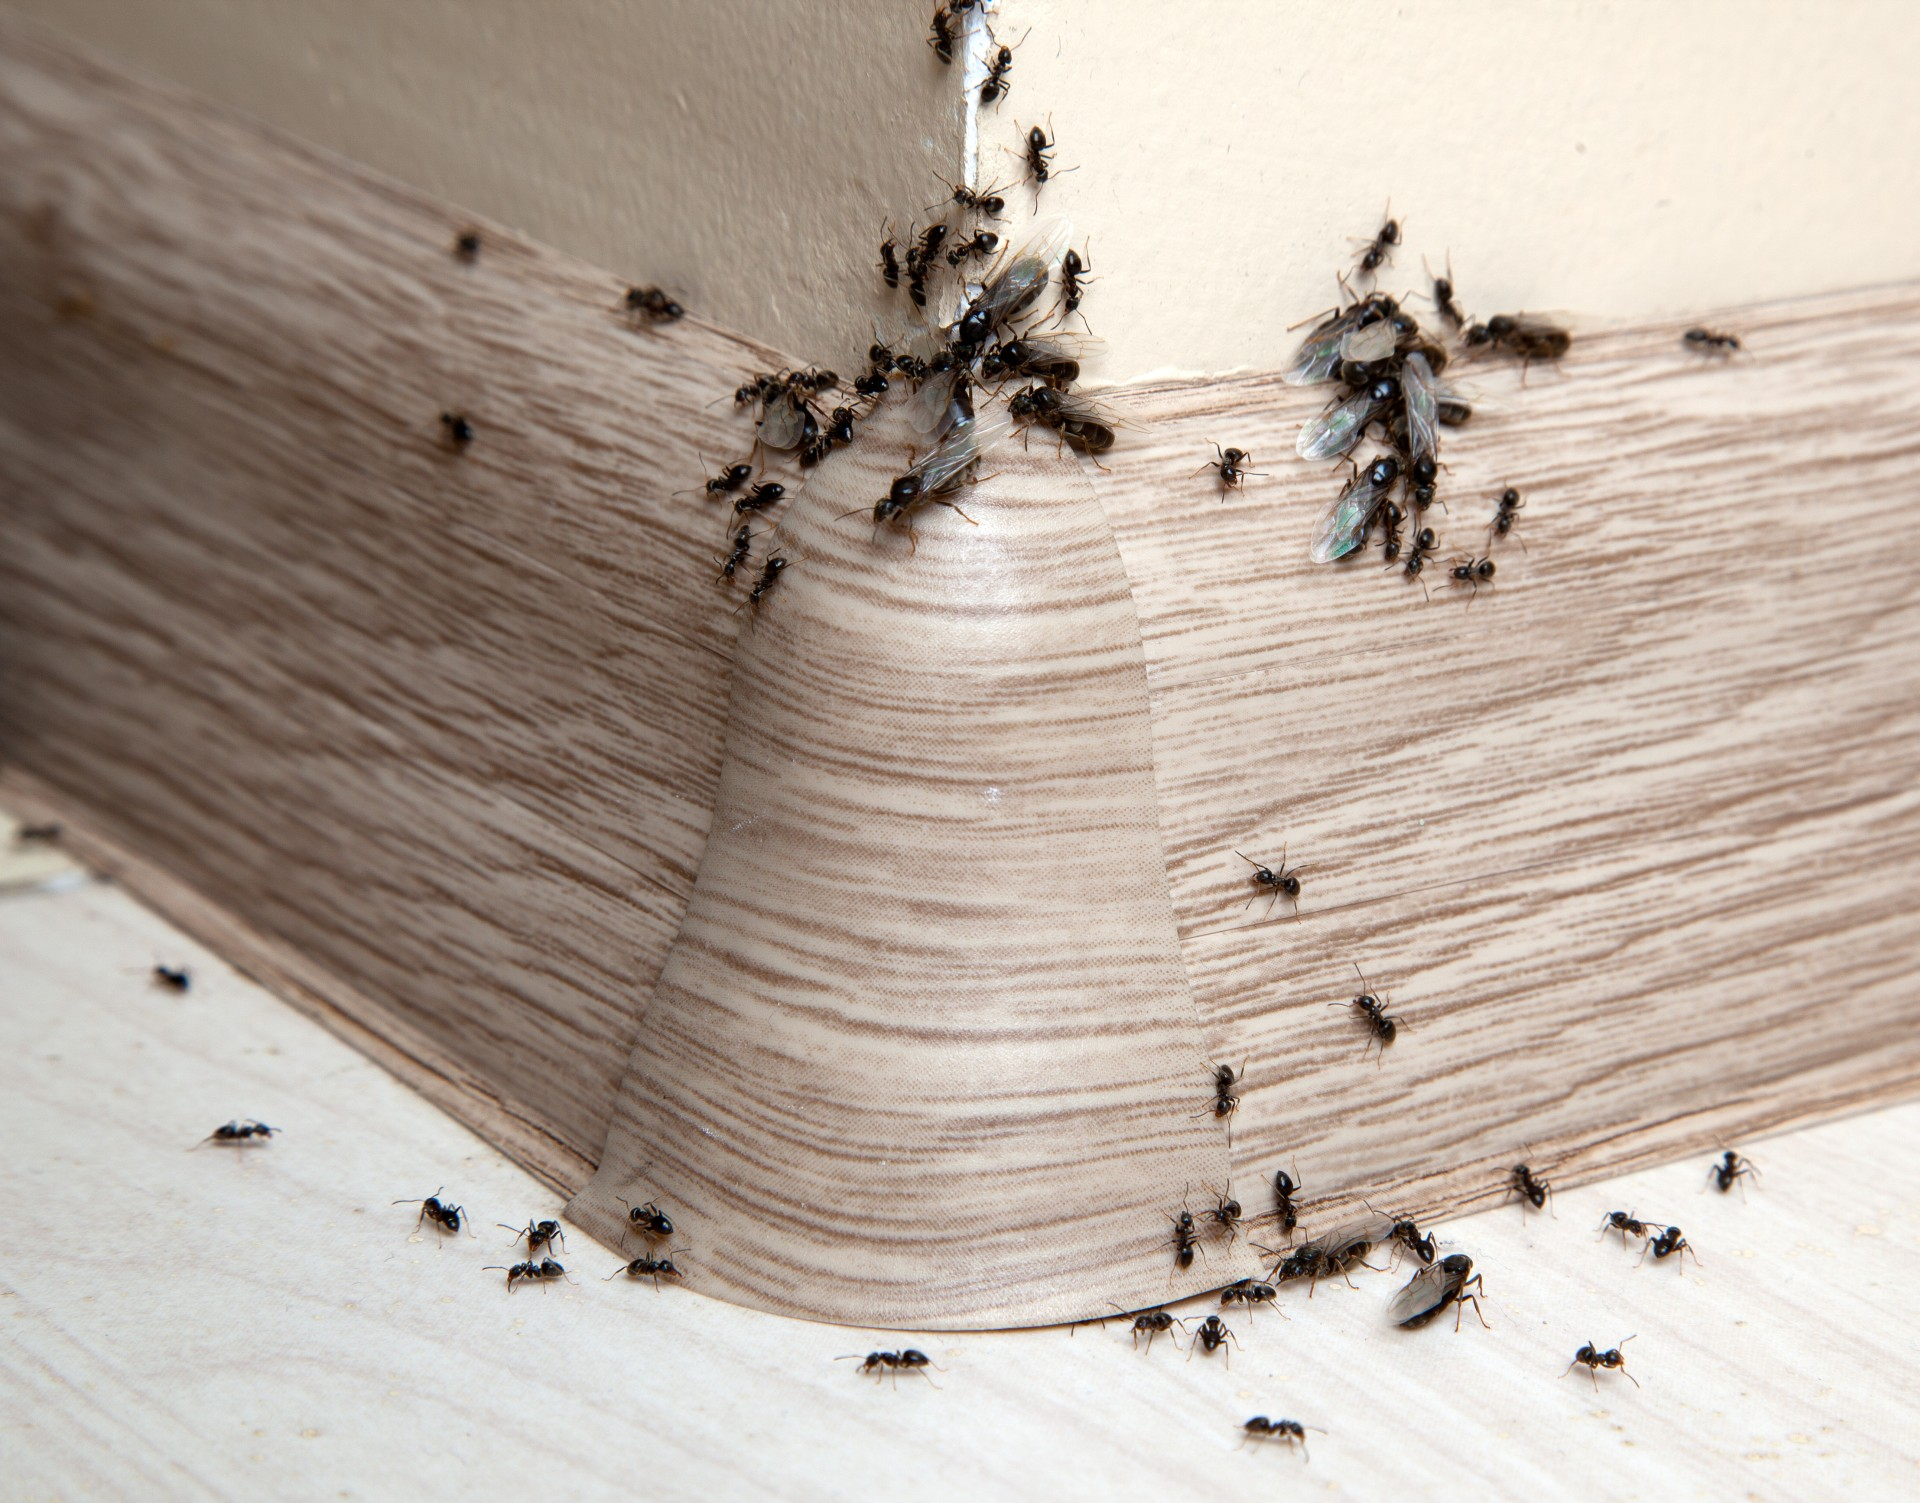 Ant Infestation, Pest Control in London. Call Now 020 3519 0469